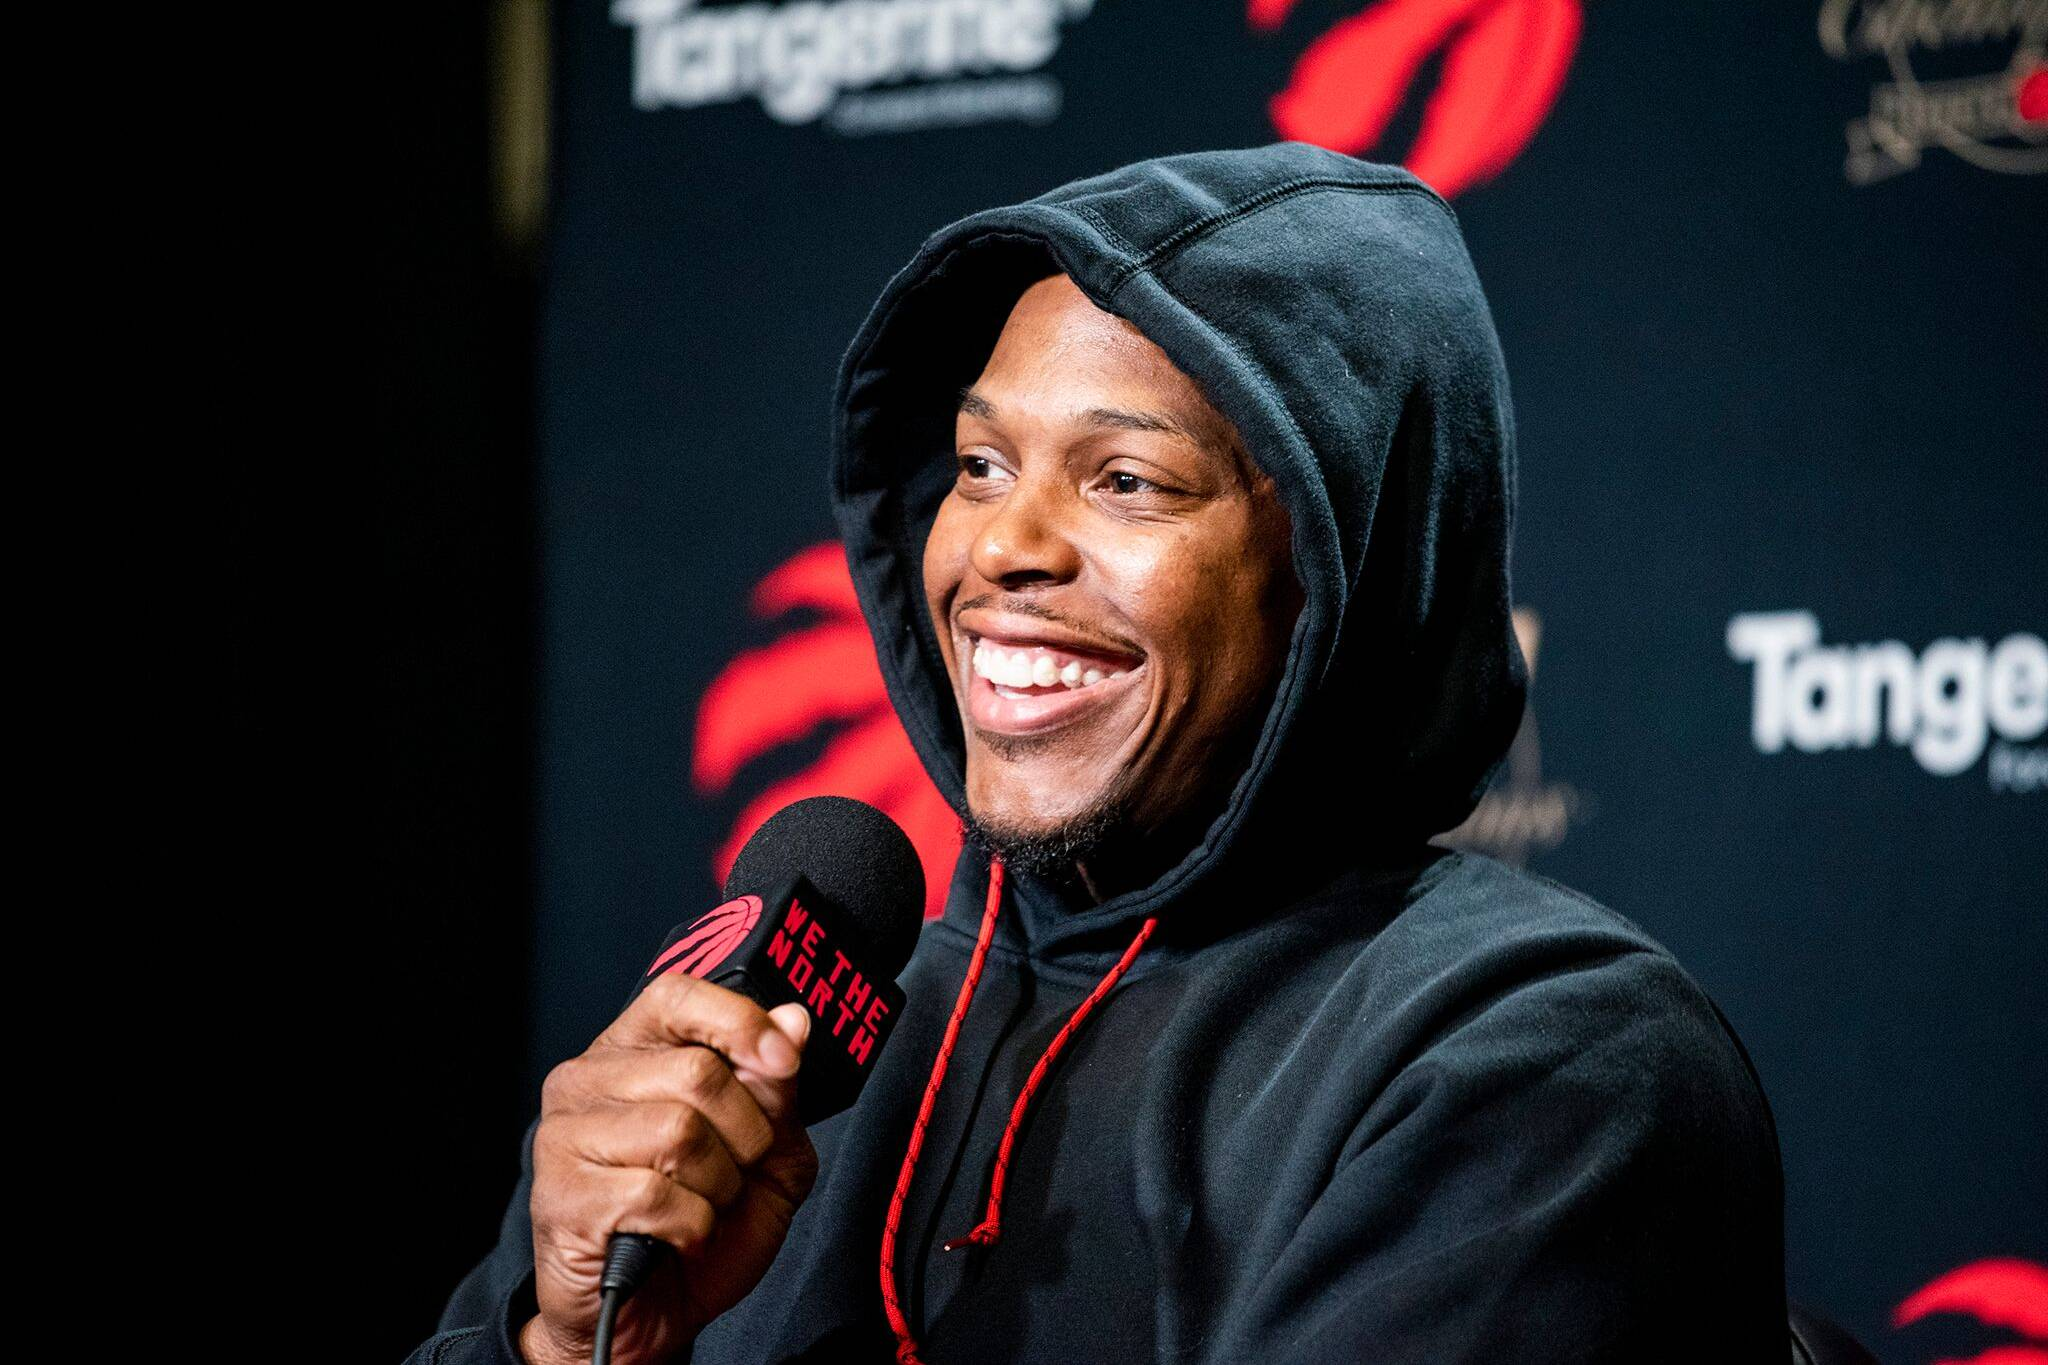 kyle lowry press conference